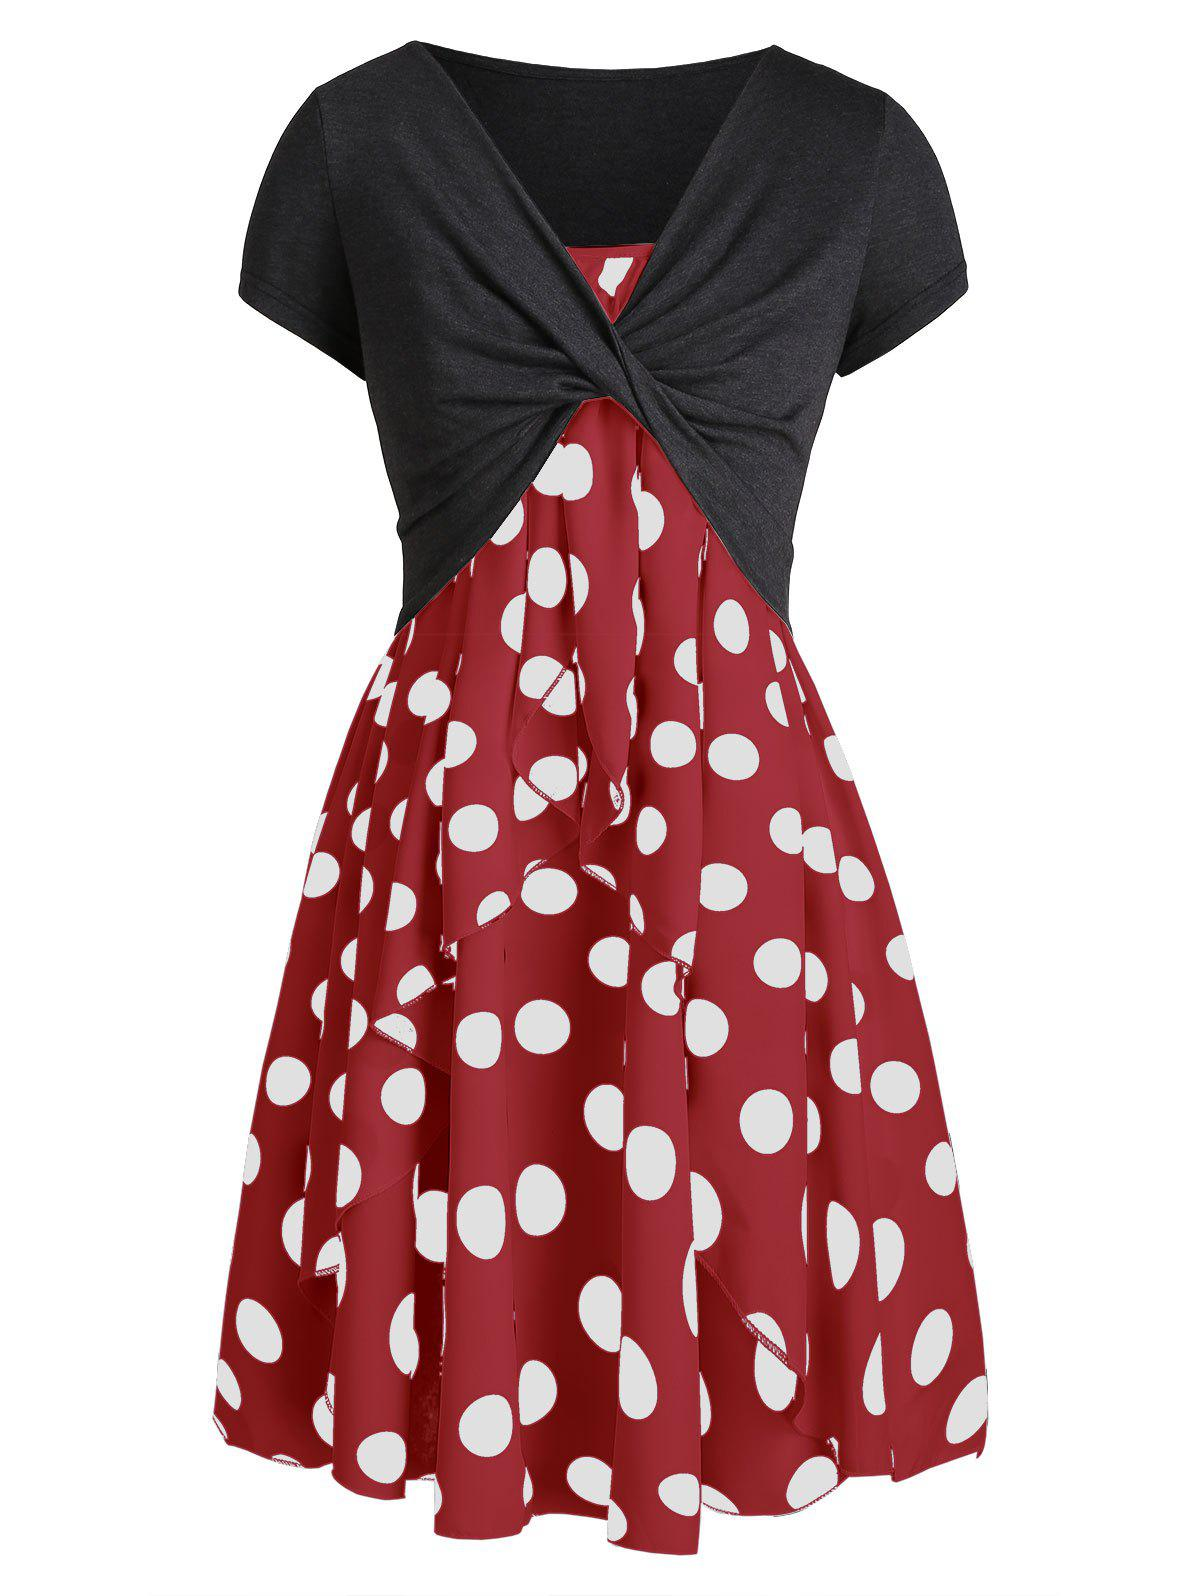 Shops Cami Polka Dot Dress with Crop T-shirt